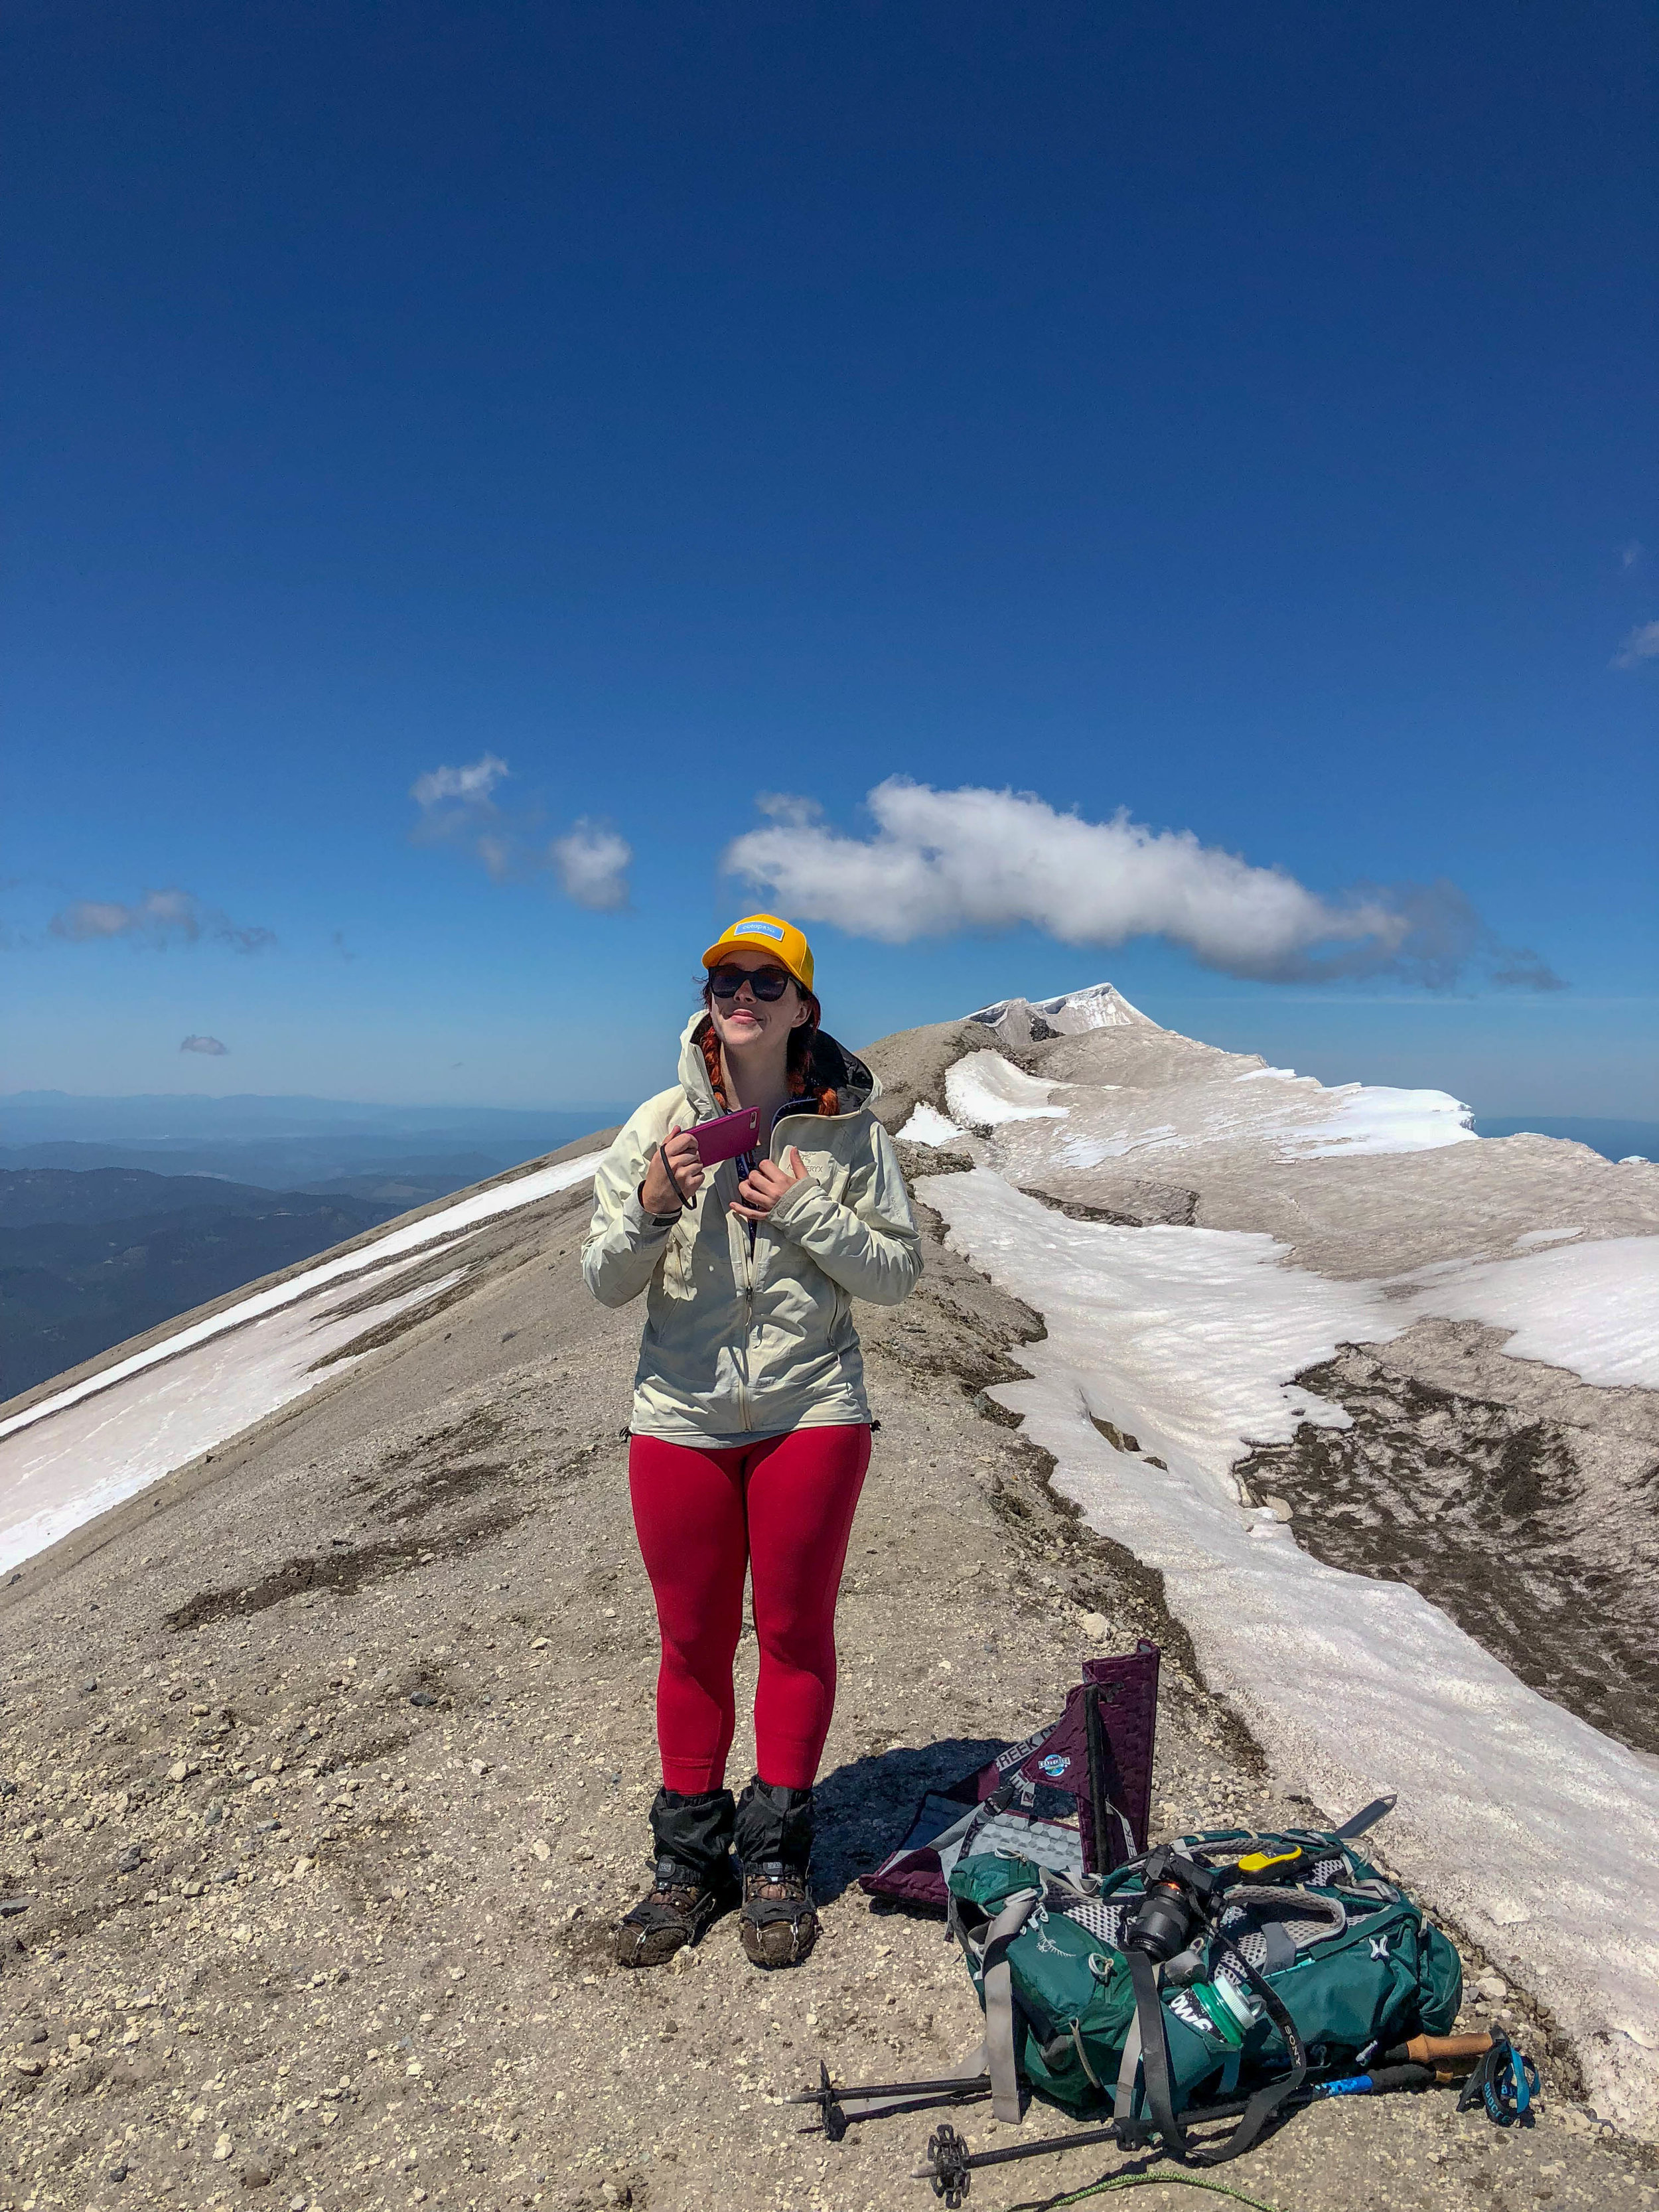 Me on the summit, see the cornice on the right side of the photo? DON'T STAND ON THAT.